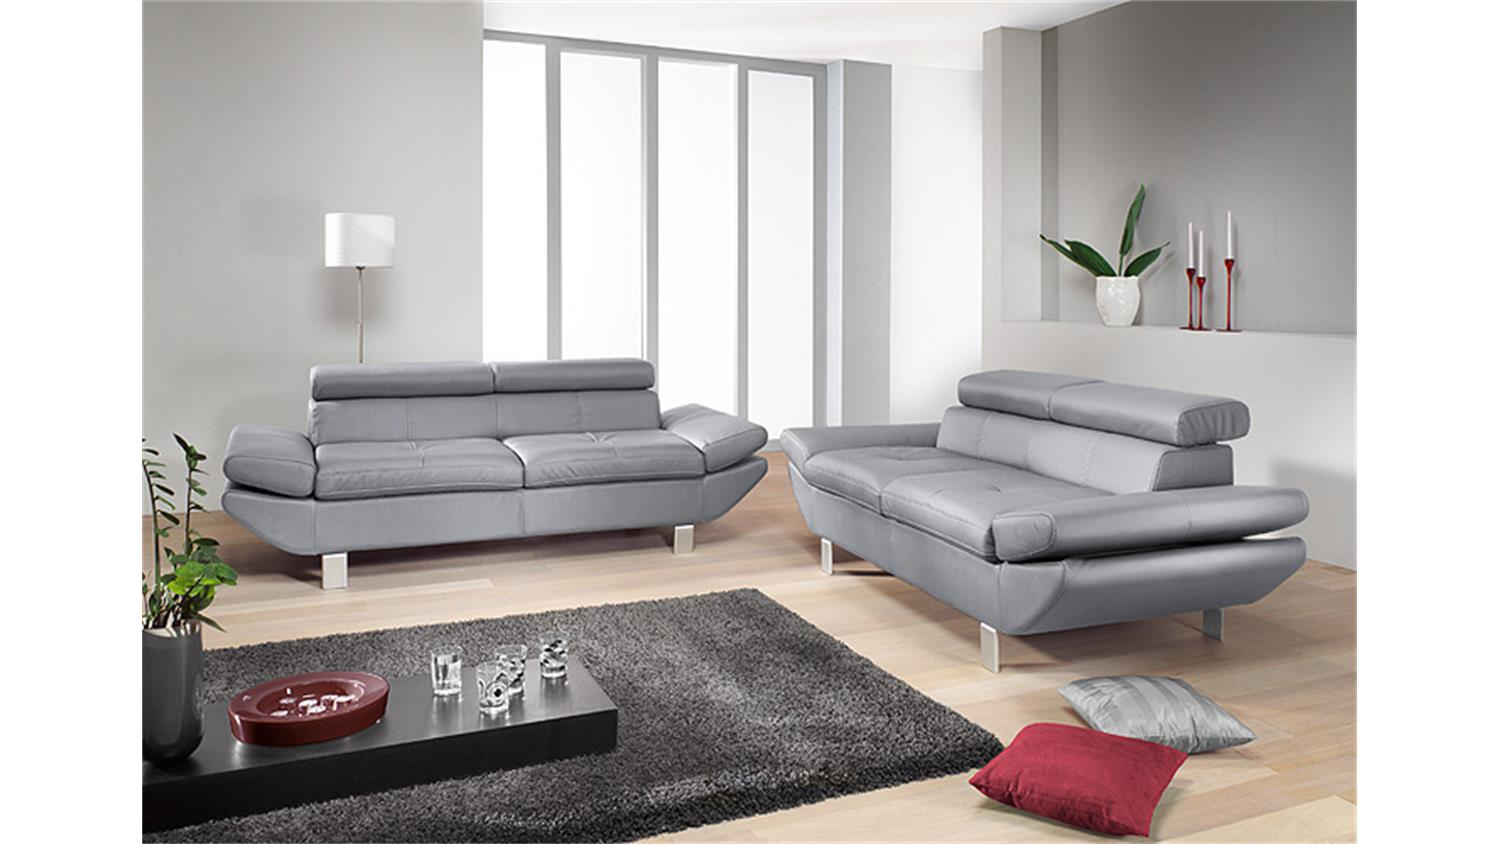 Sofa Garnitur Carrier Polstermobel Mit Relaxfunktion In Grau